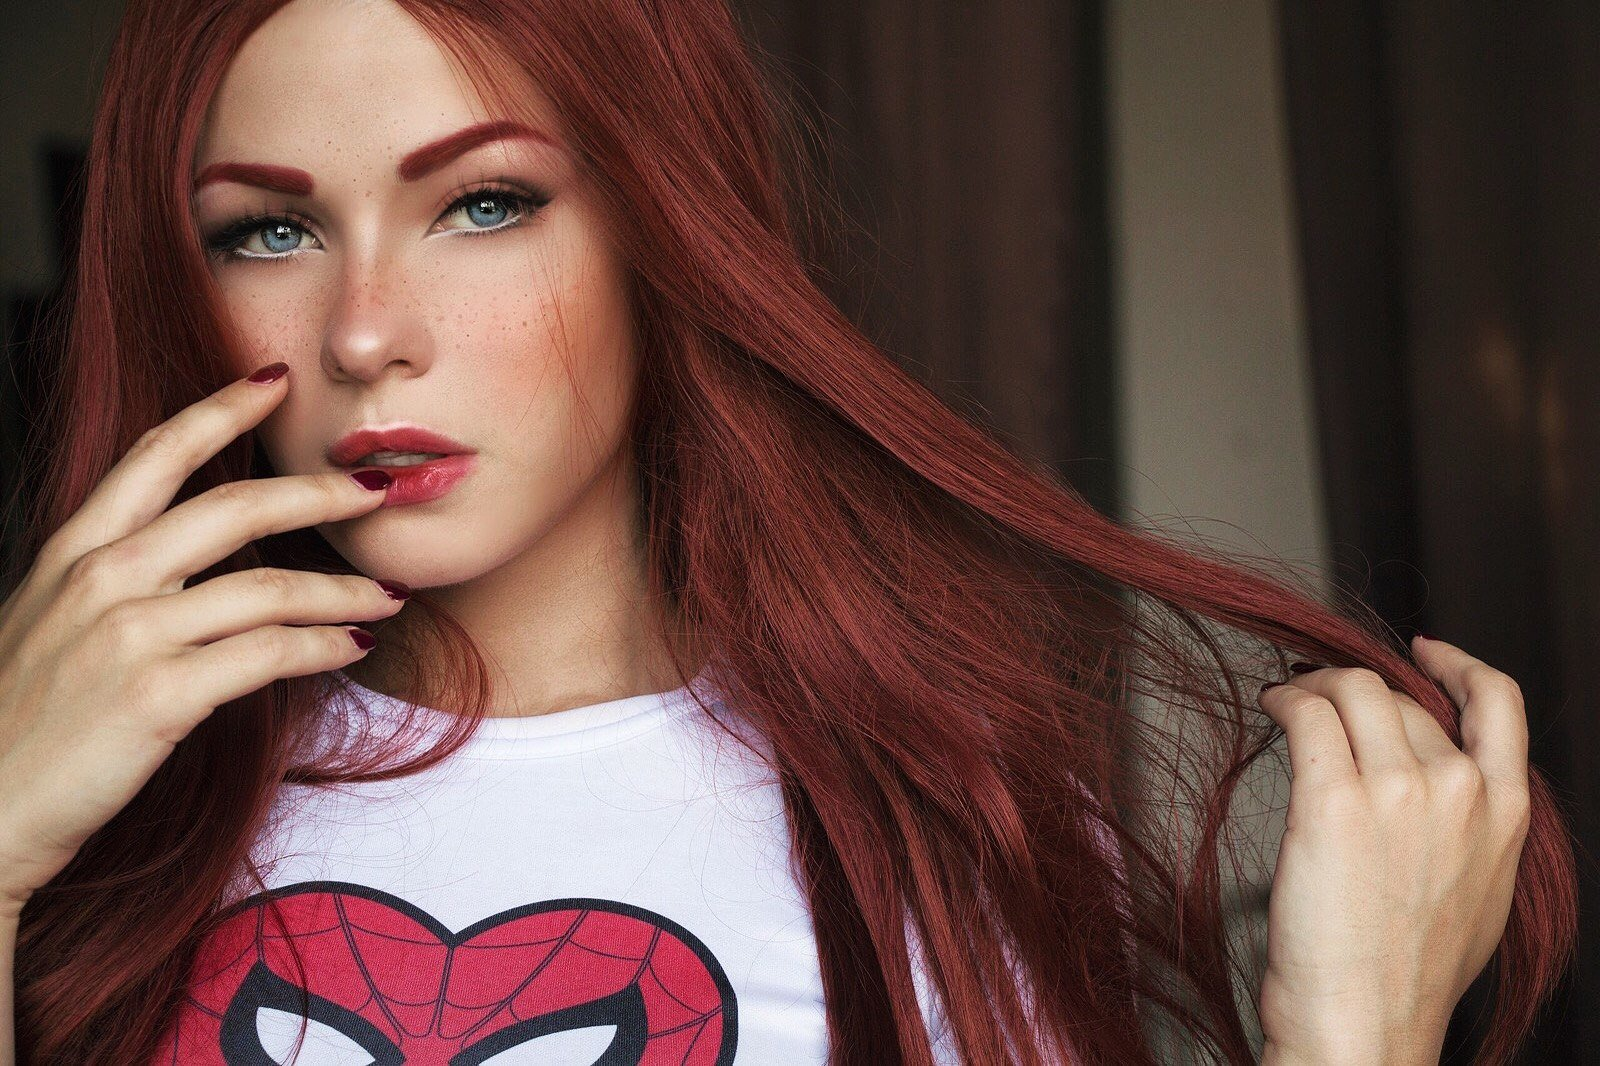 Irina-Meier-Cosplay-Girl-005-Mary-Jane